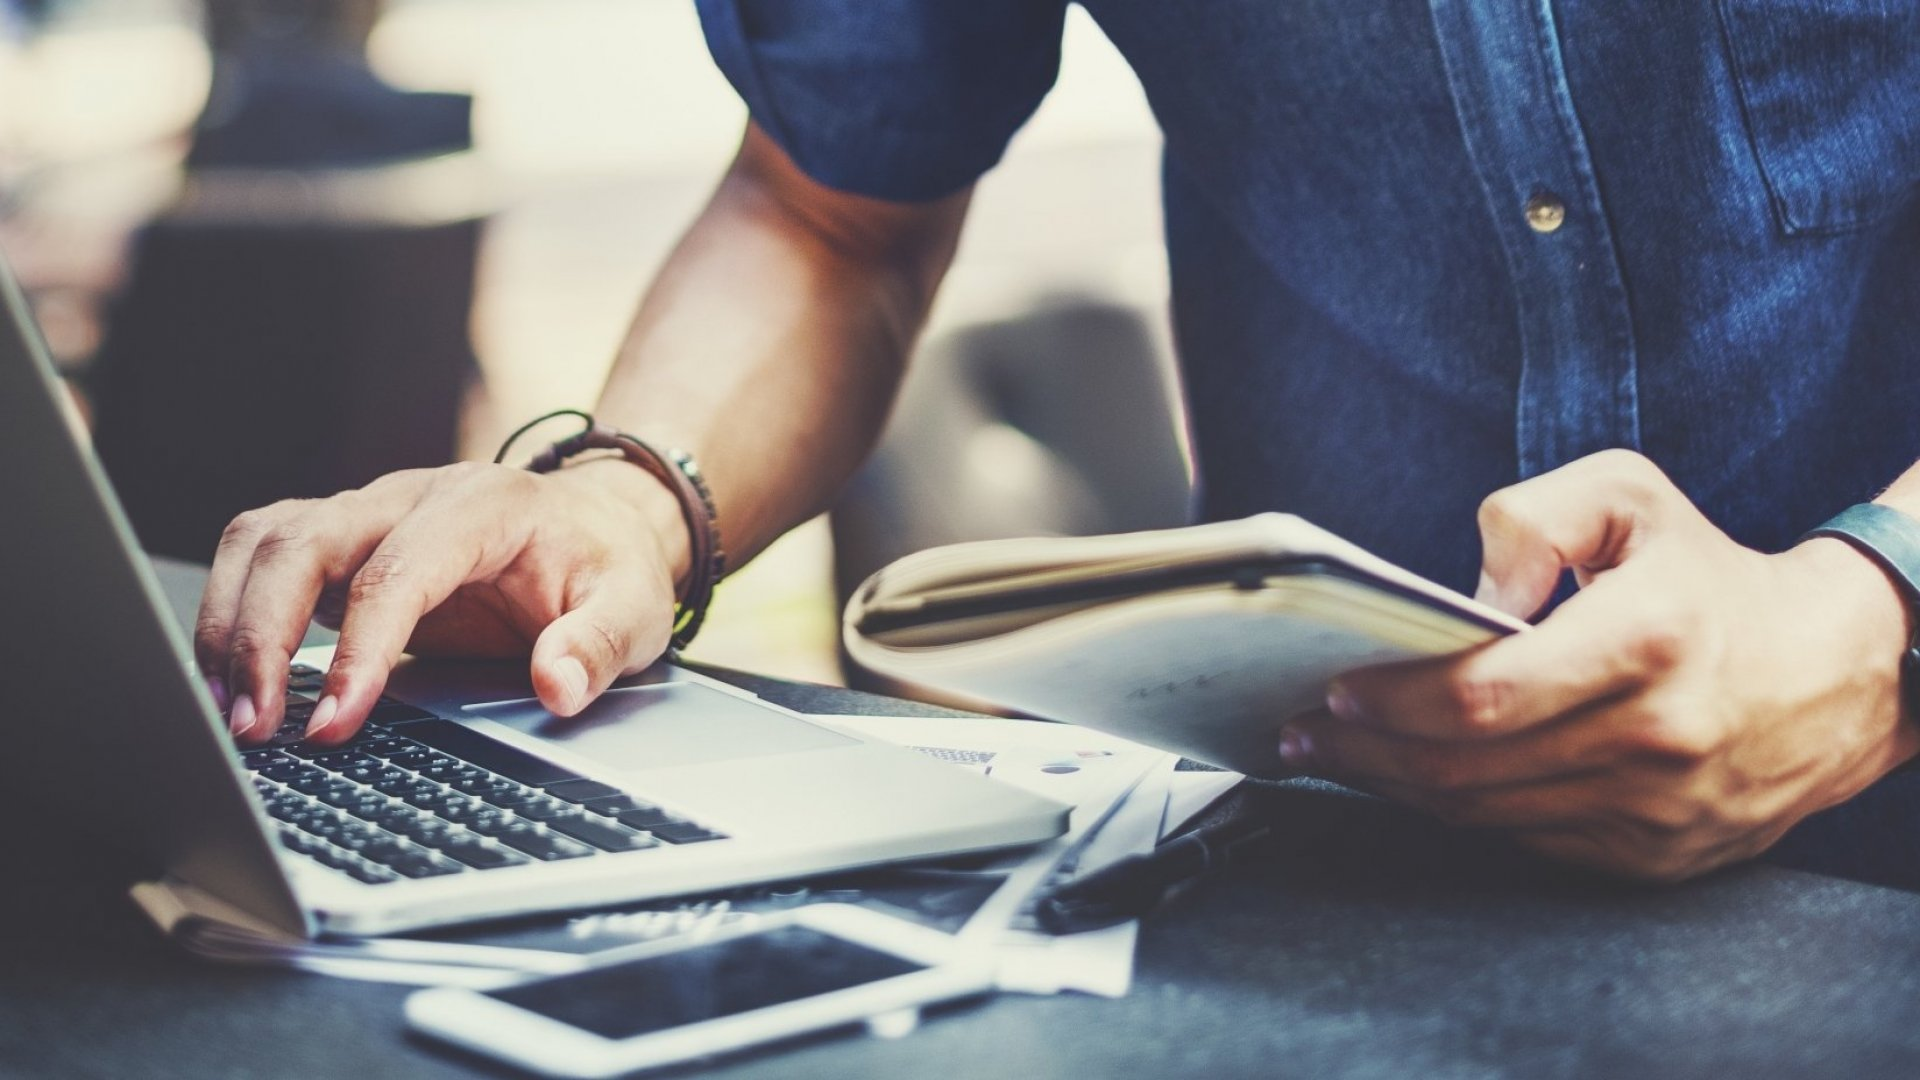 You've Got 60 Seconds to Impress. 5 Ways to Make Your Resume Stand Out